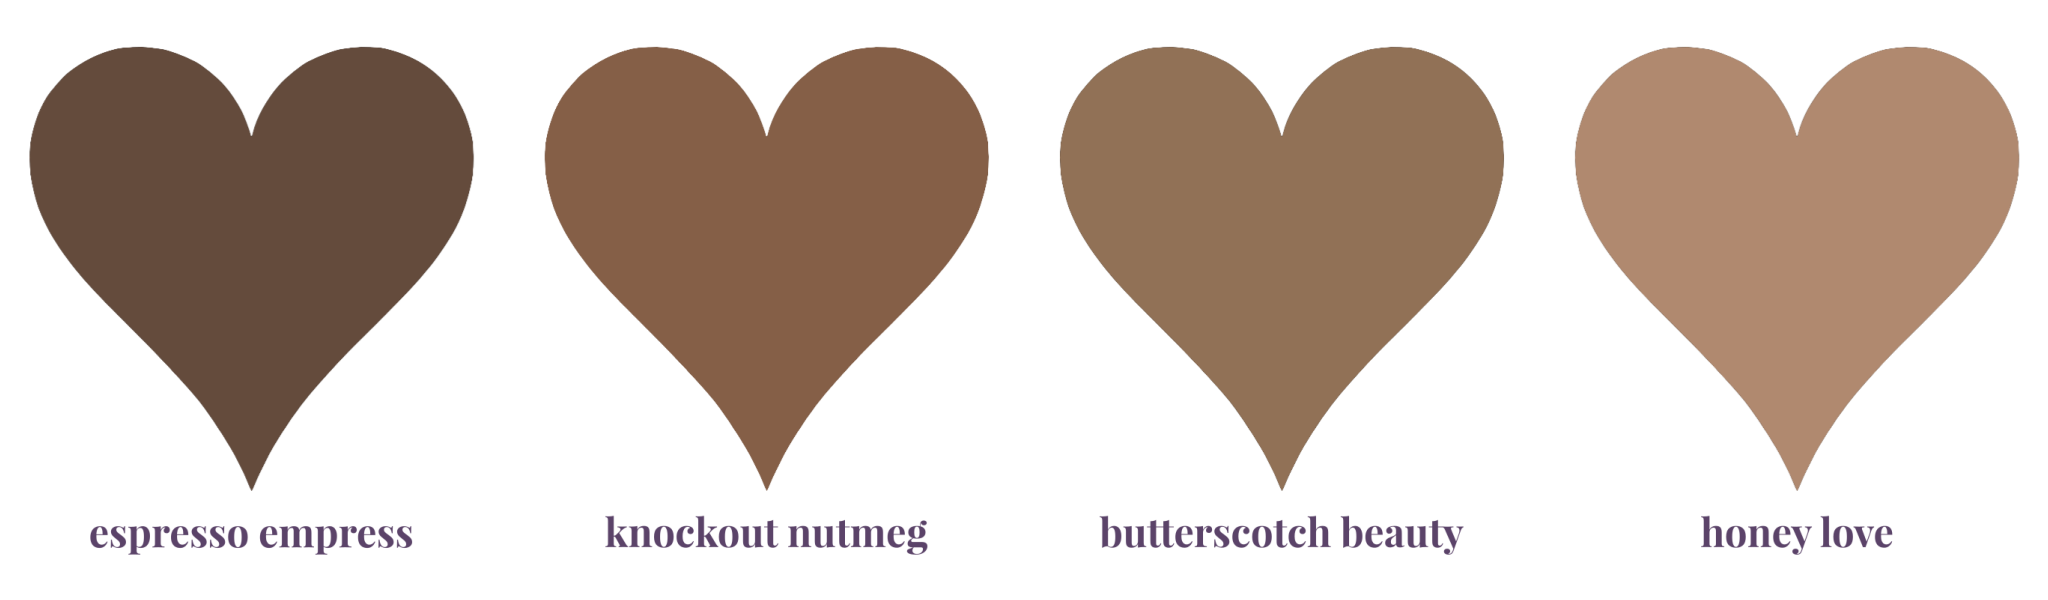 Four Shades of Brown Bras